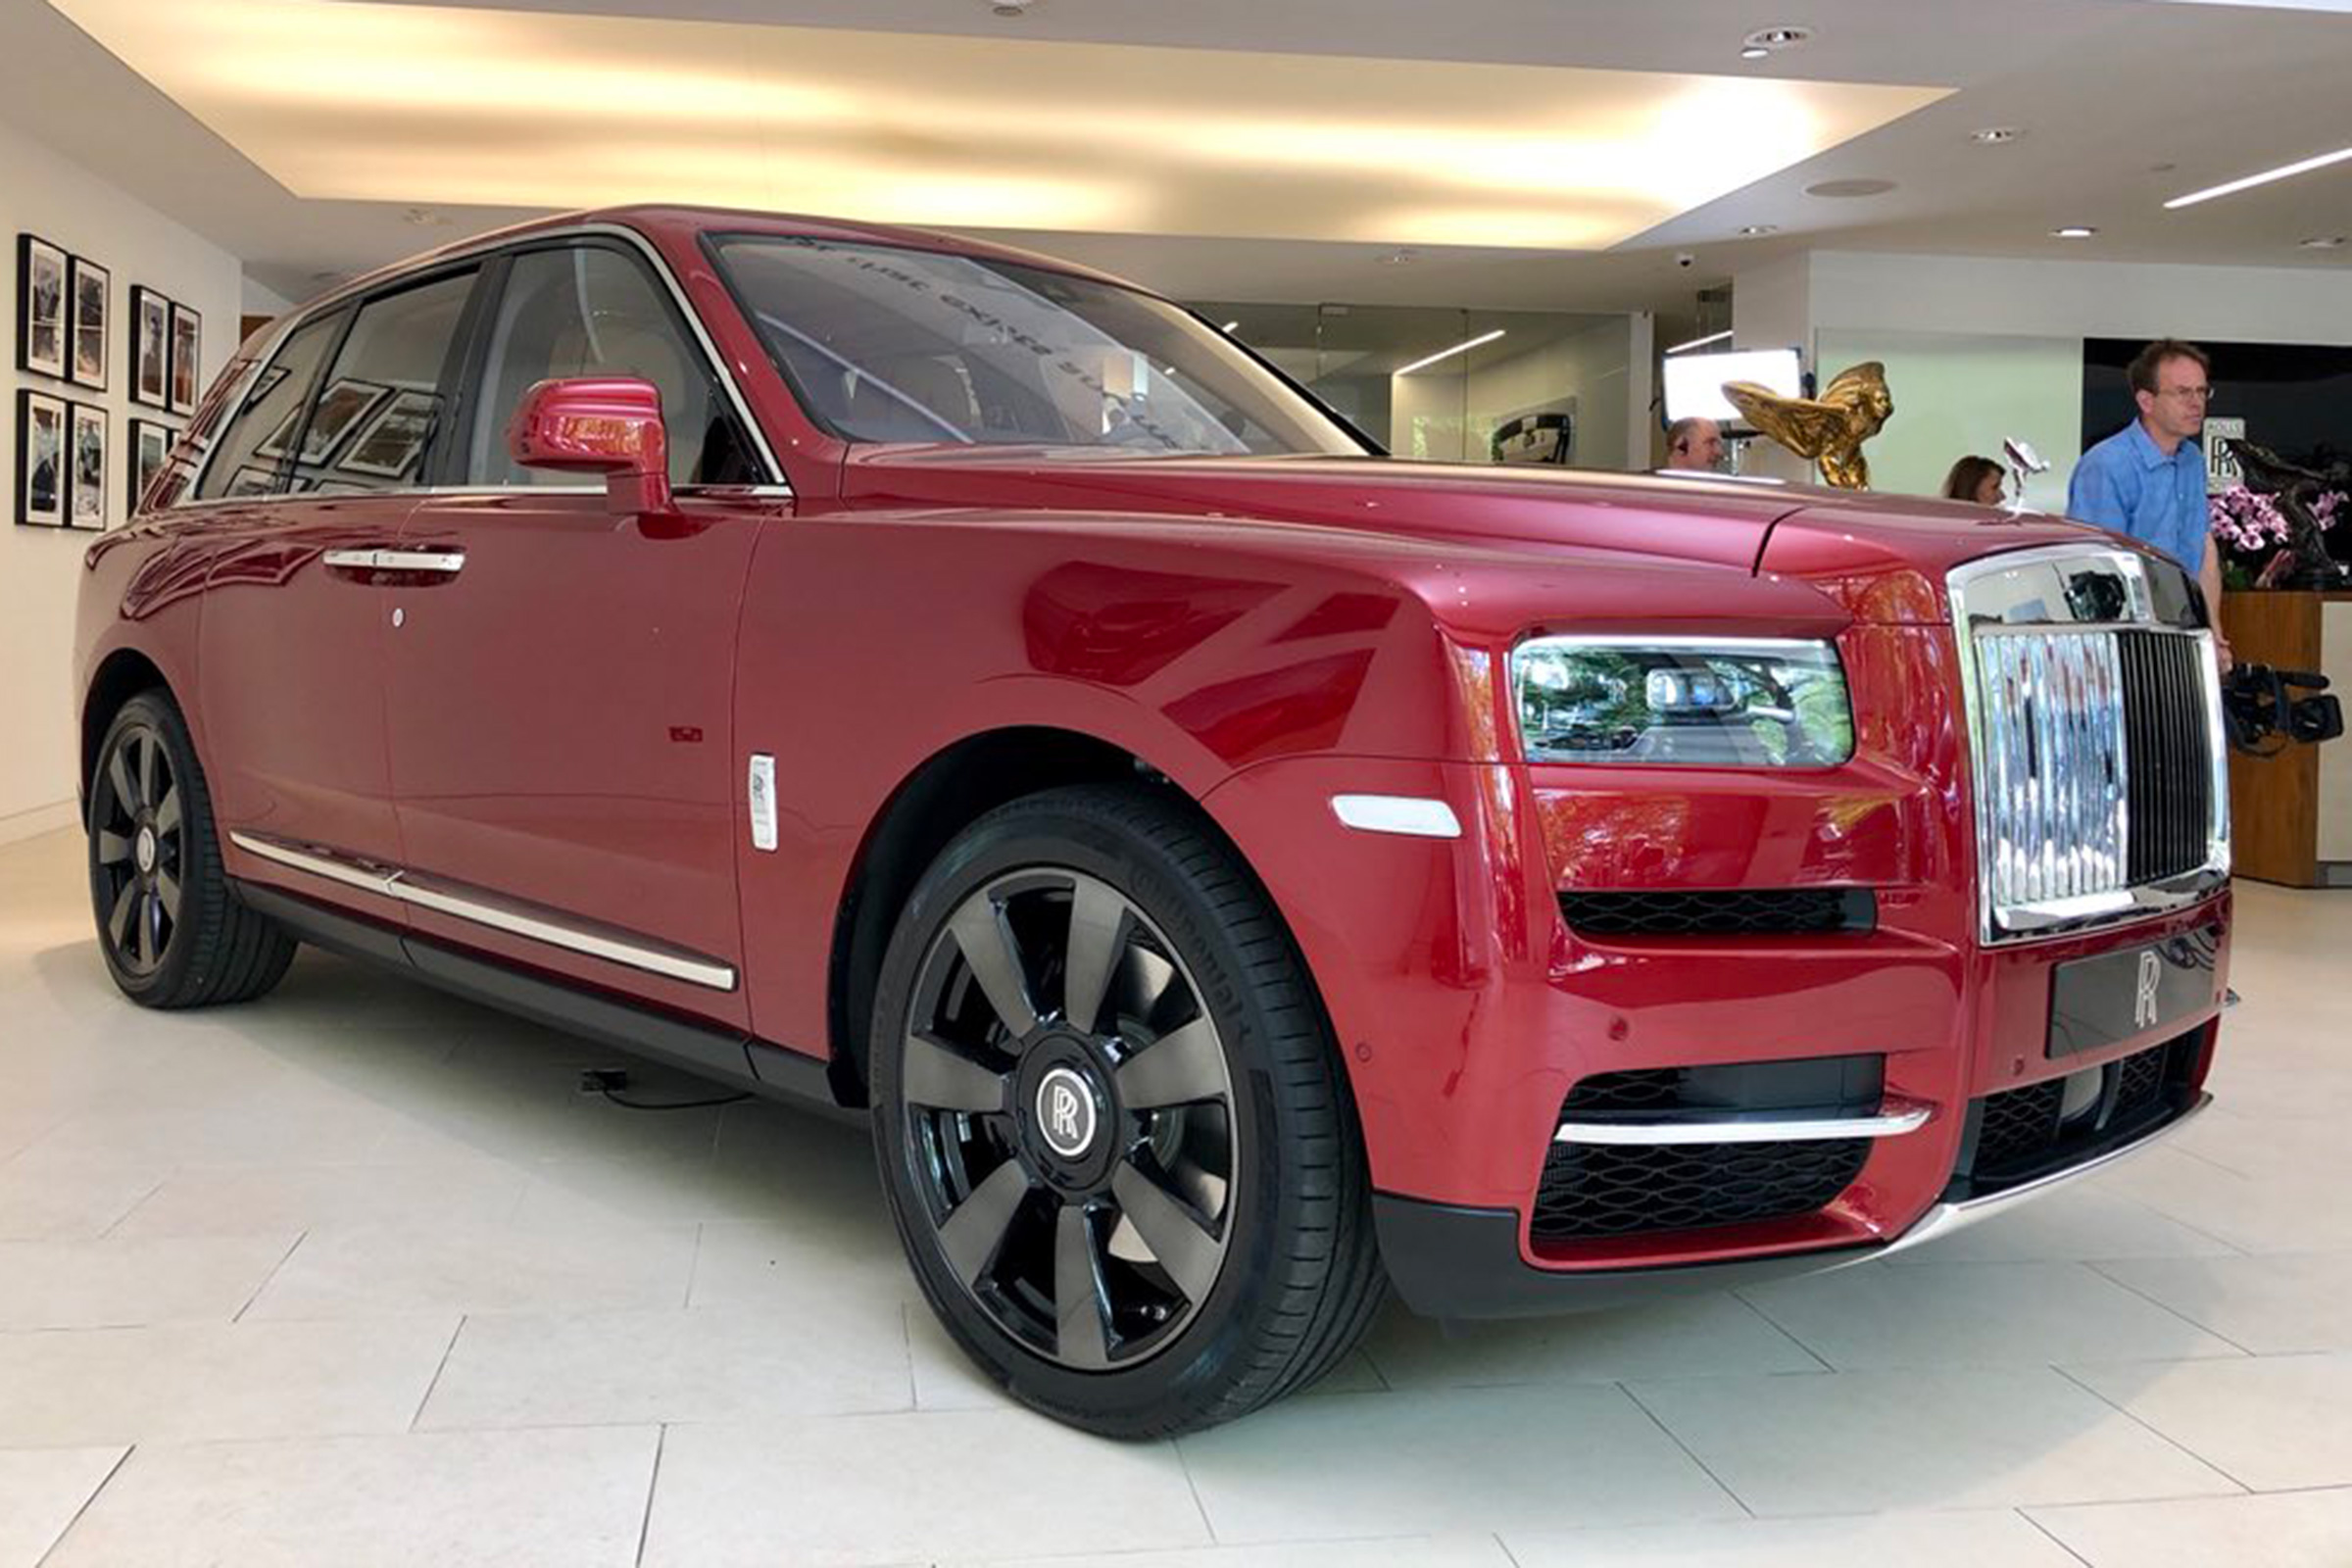 New Rolls Royce Cullinan Suv Revealed Auto Express